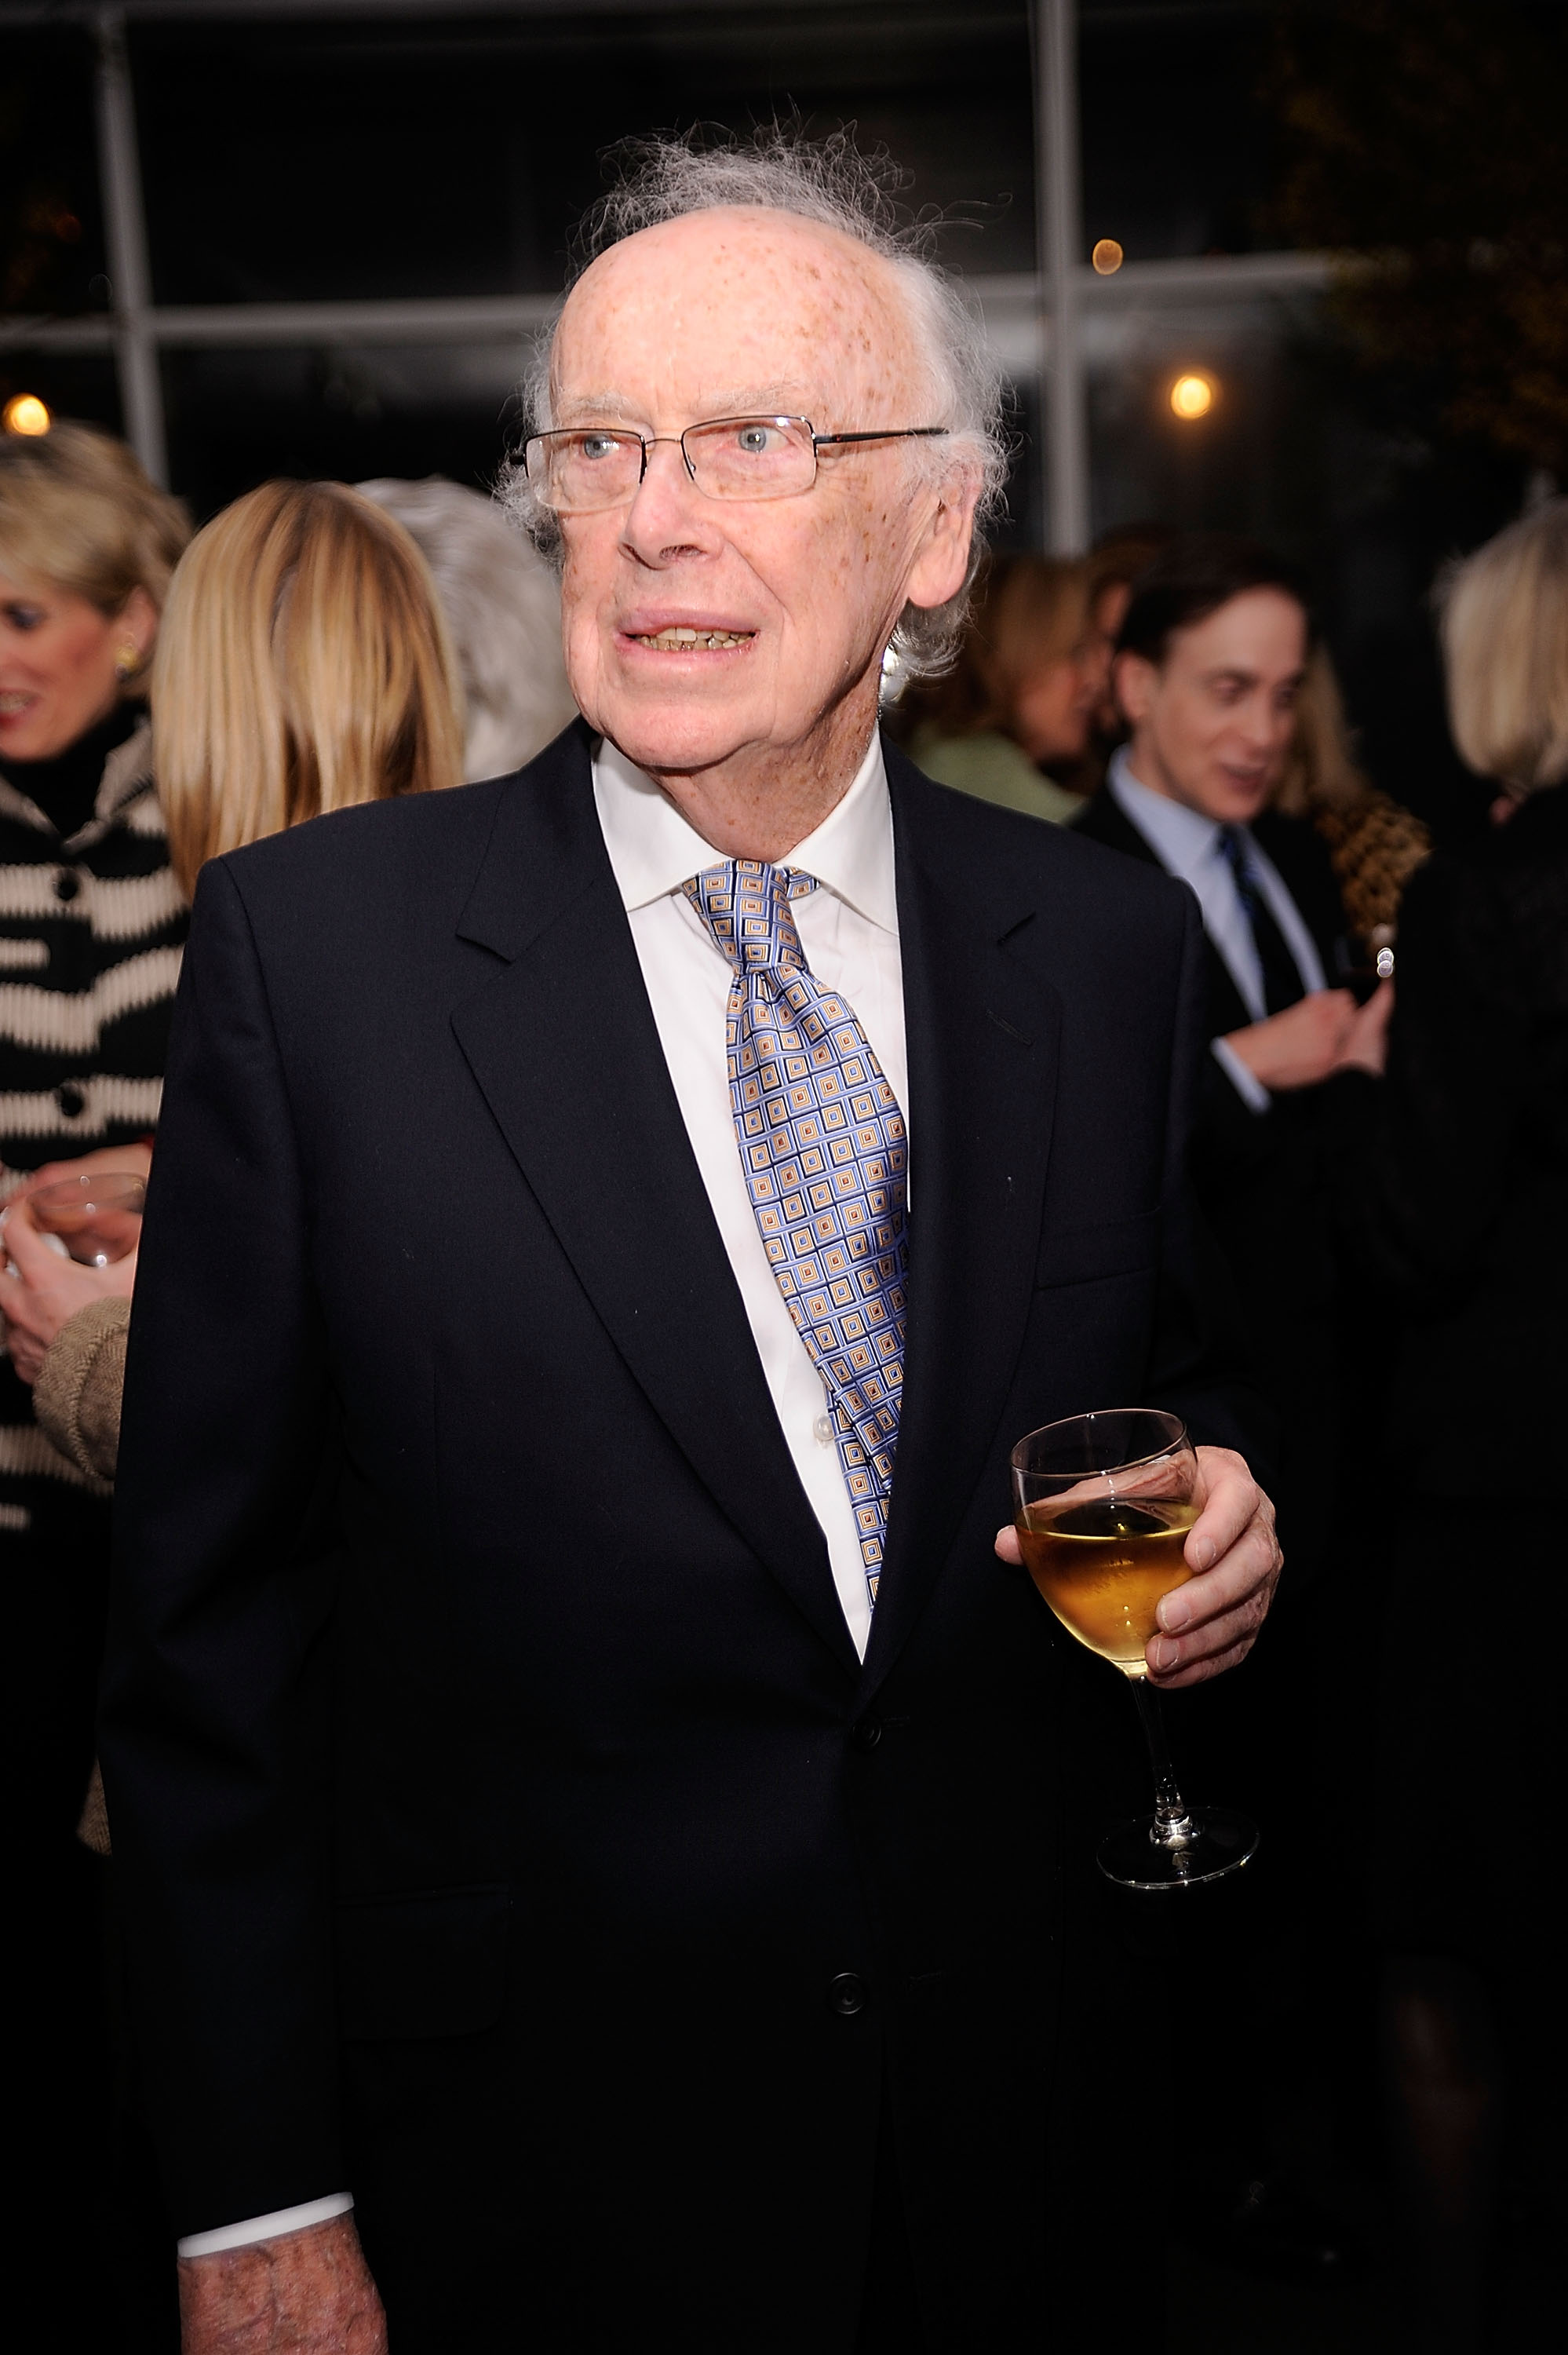 Noble Prize winner, Dr. James Watson, attends the Literacy Partners 26th annual Evening of Readings pre-gala kick-off at Michael's on March 1, 2010 in New York City.